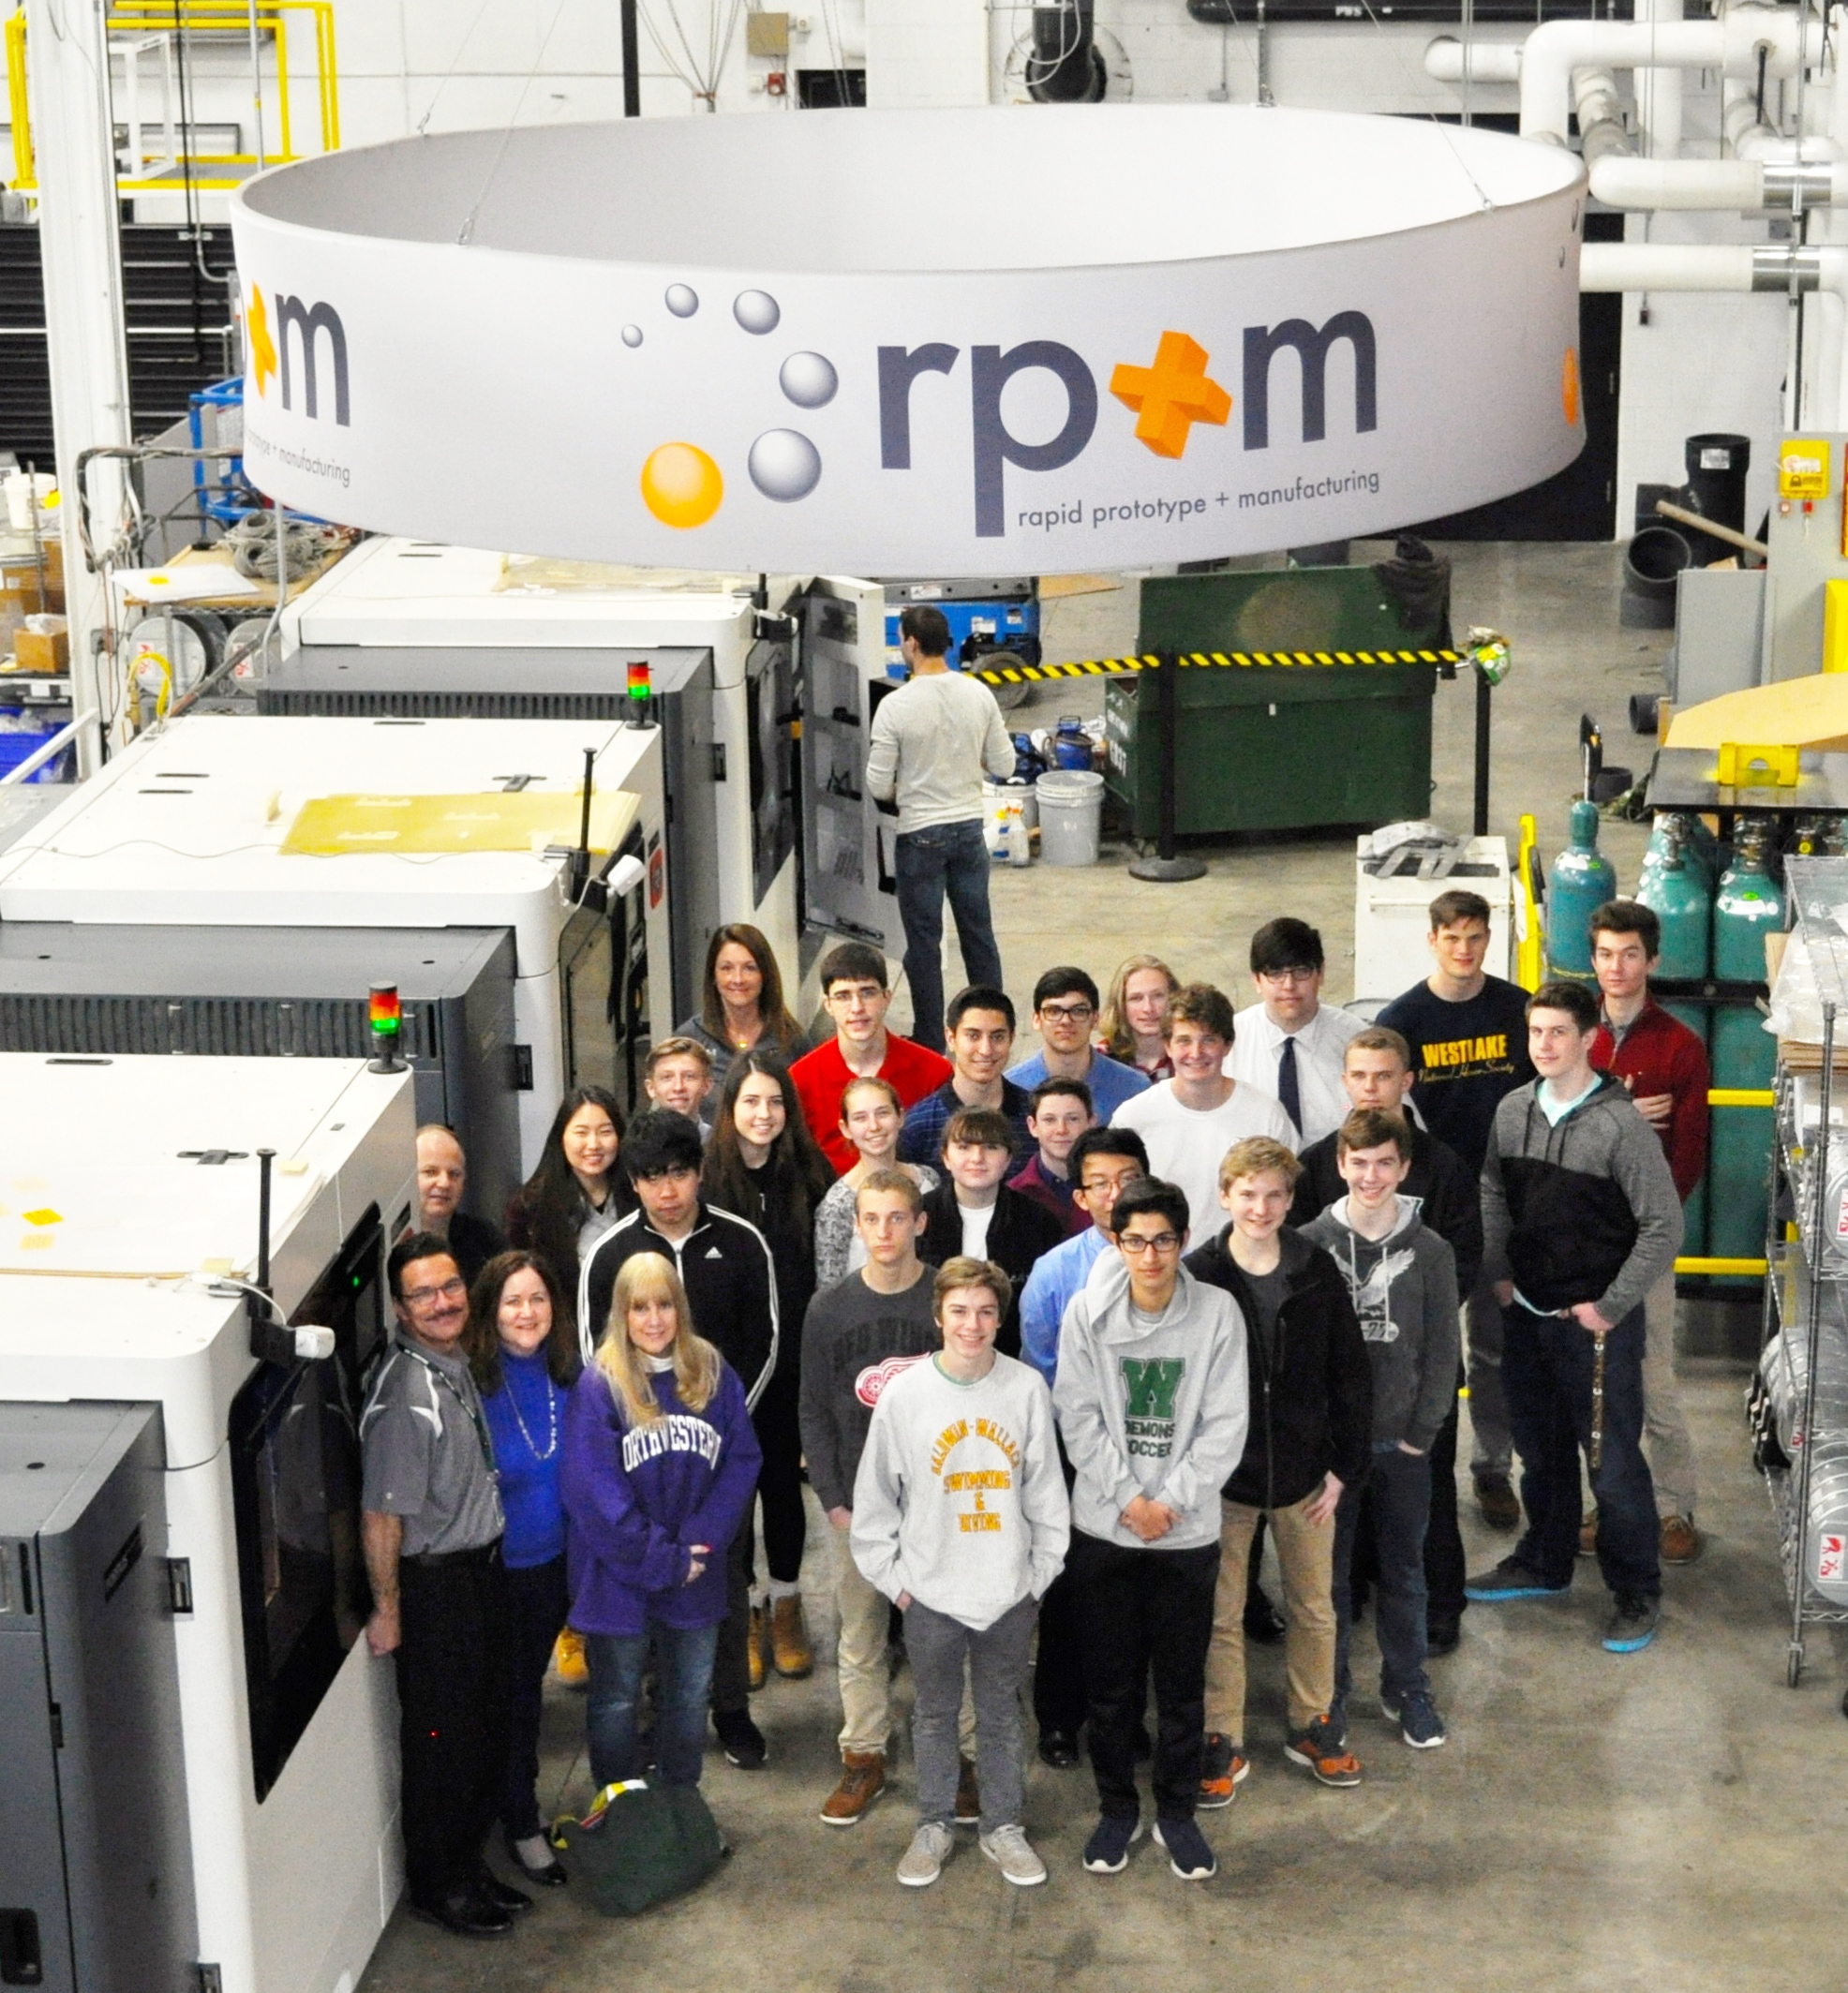 On tour of the rp+m company in Avon Lake - April 2017